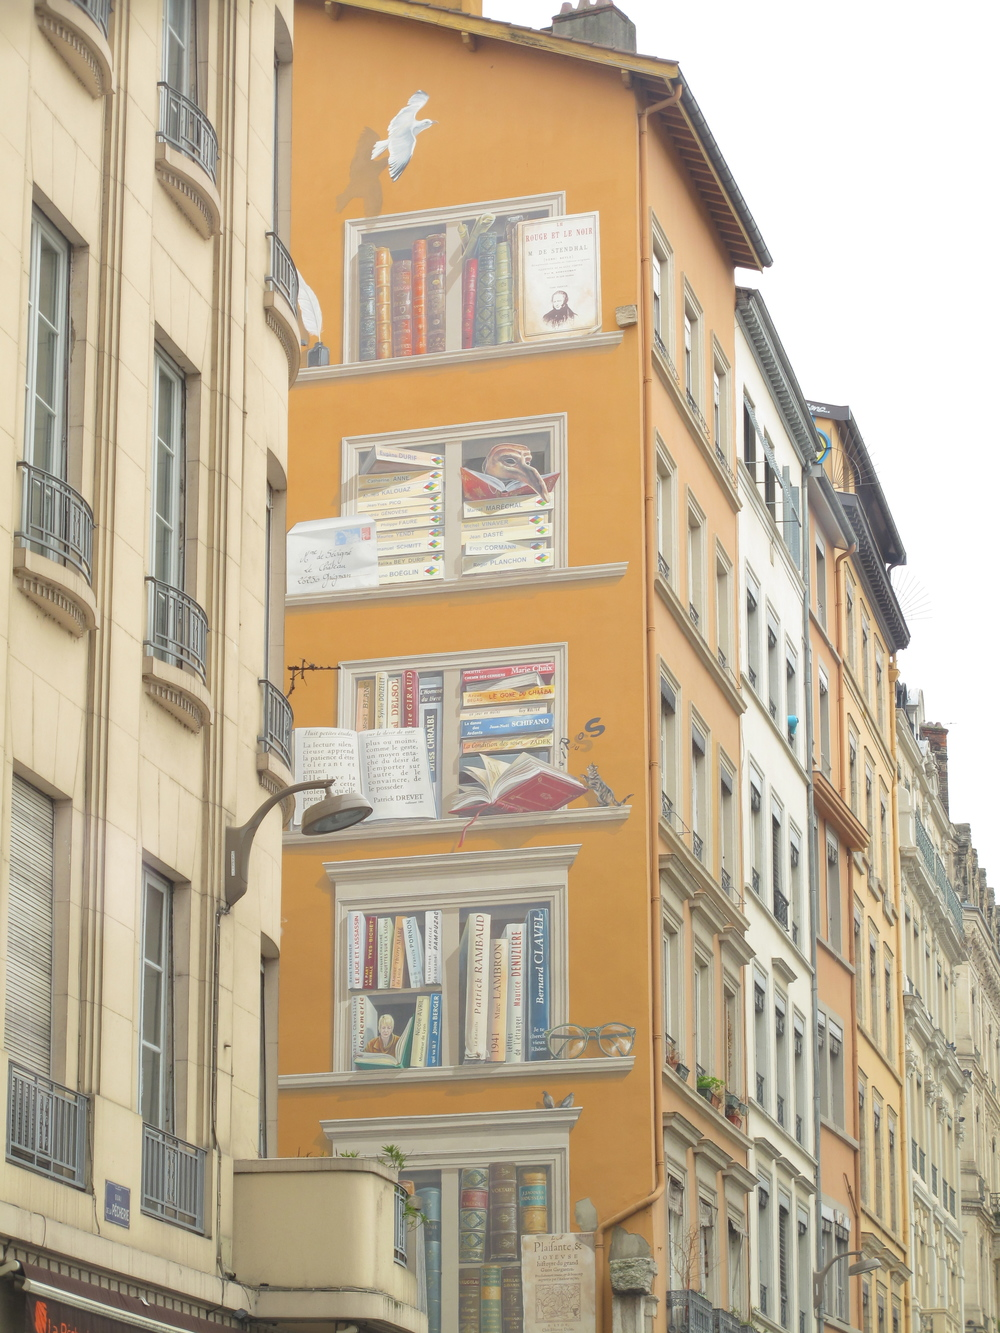 Trompe l'oeil wall of bookshelves in Lyon, France